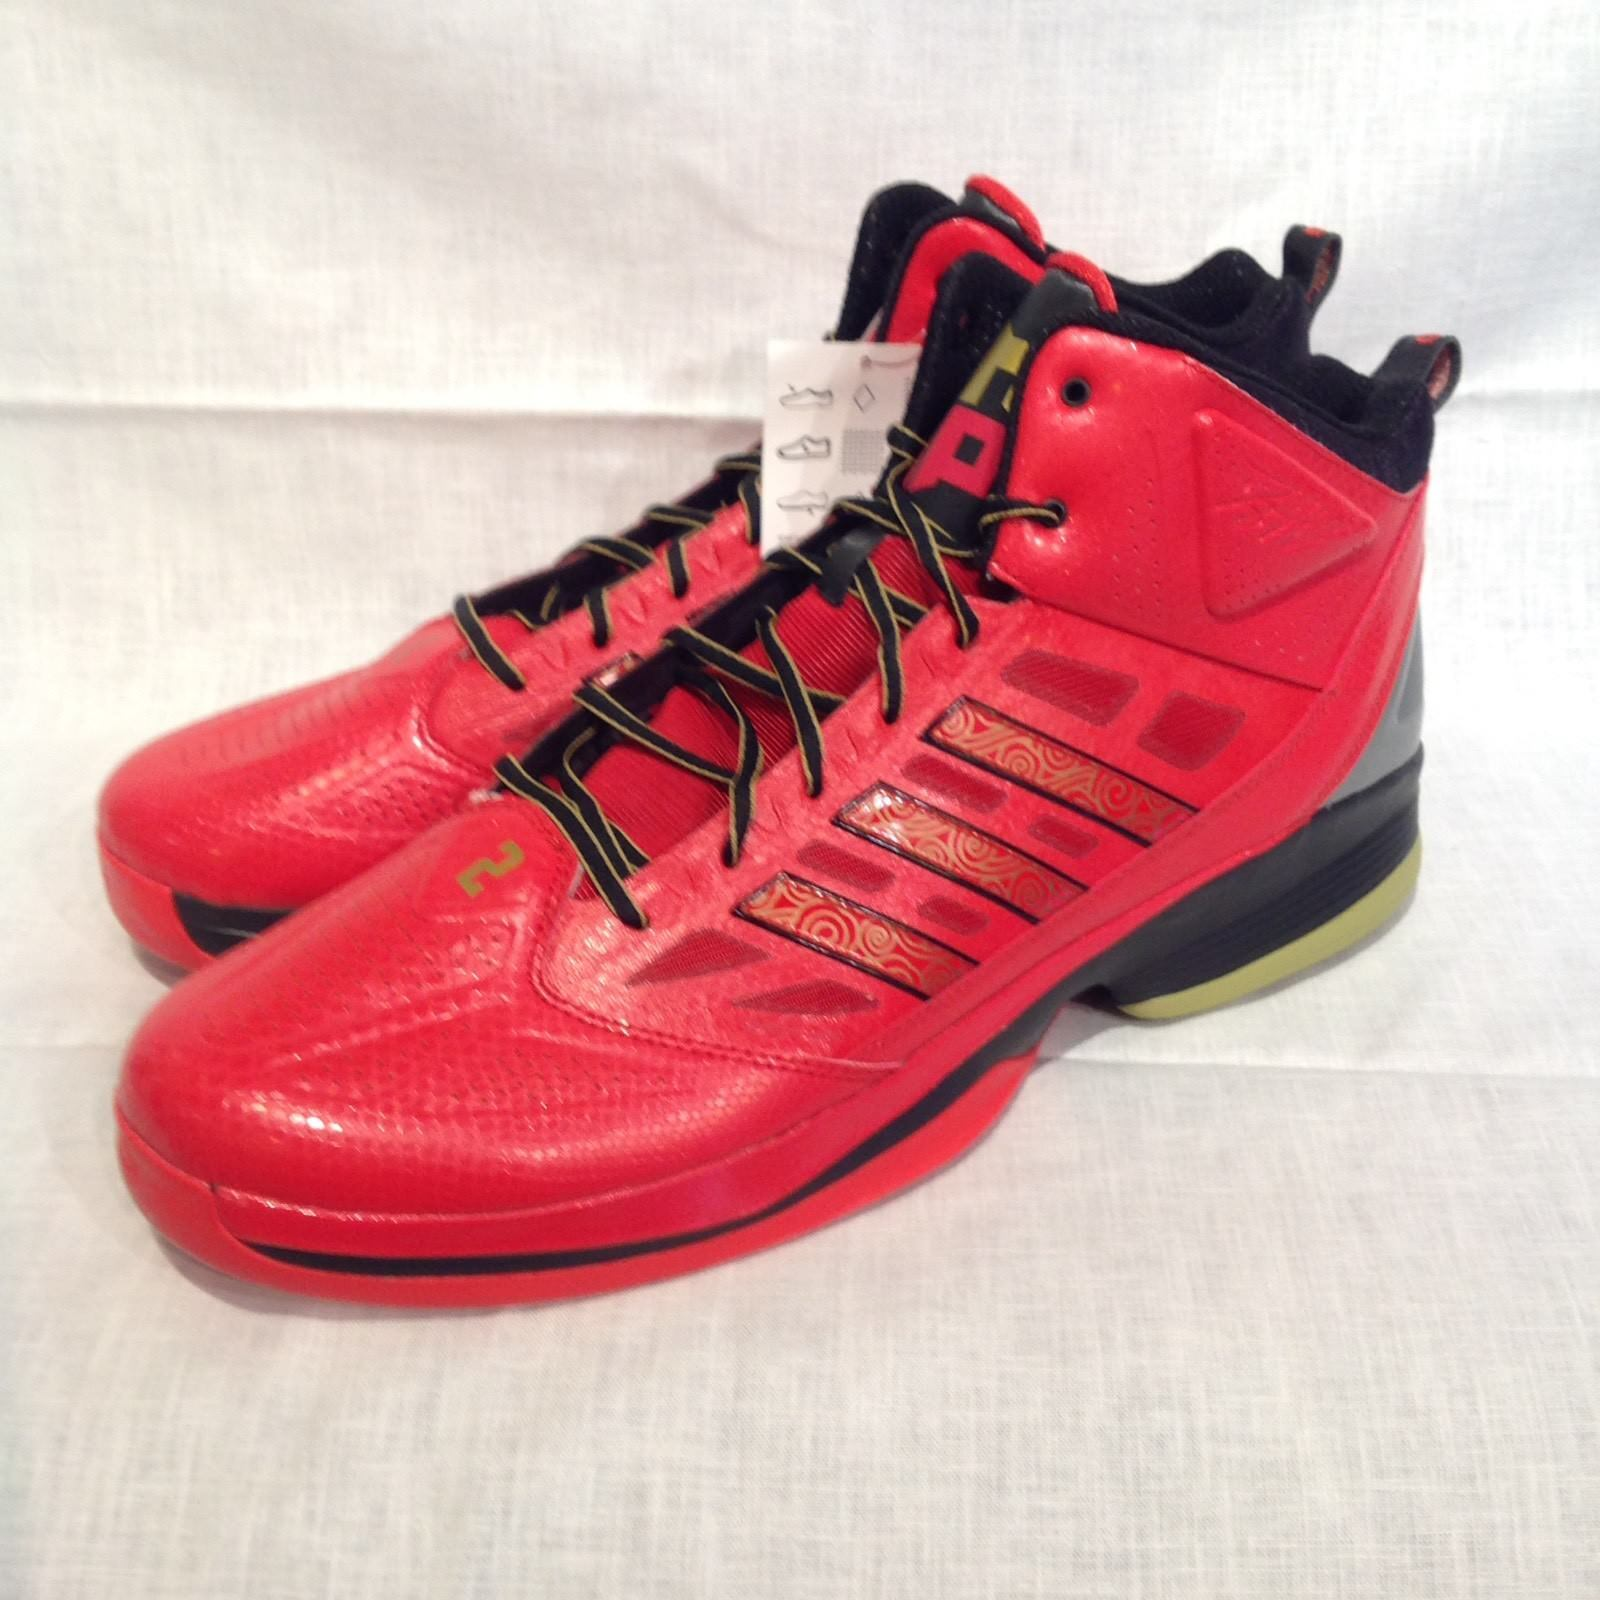 Adidas D Howard Light Basketball Sneakers - Size 18